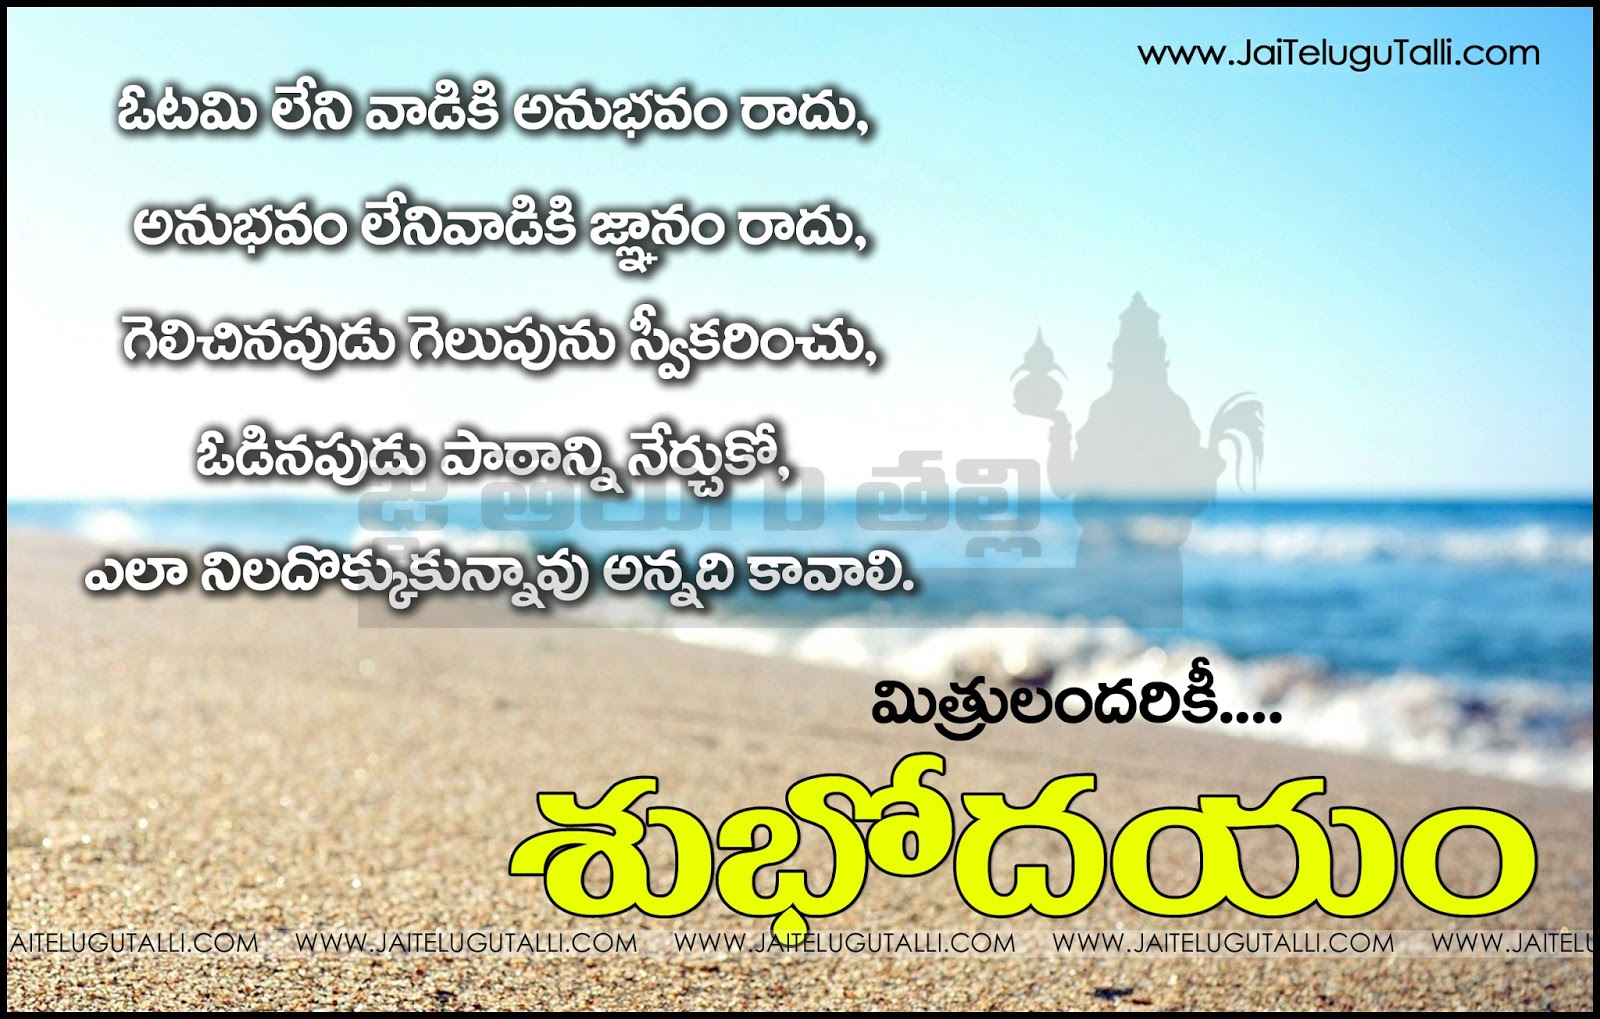 Good Morning Inspirational Quotes Good Morning Images And Quotes In Telugu Inspirational Quotes Hd